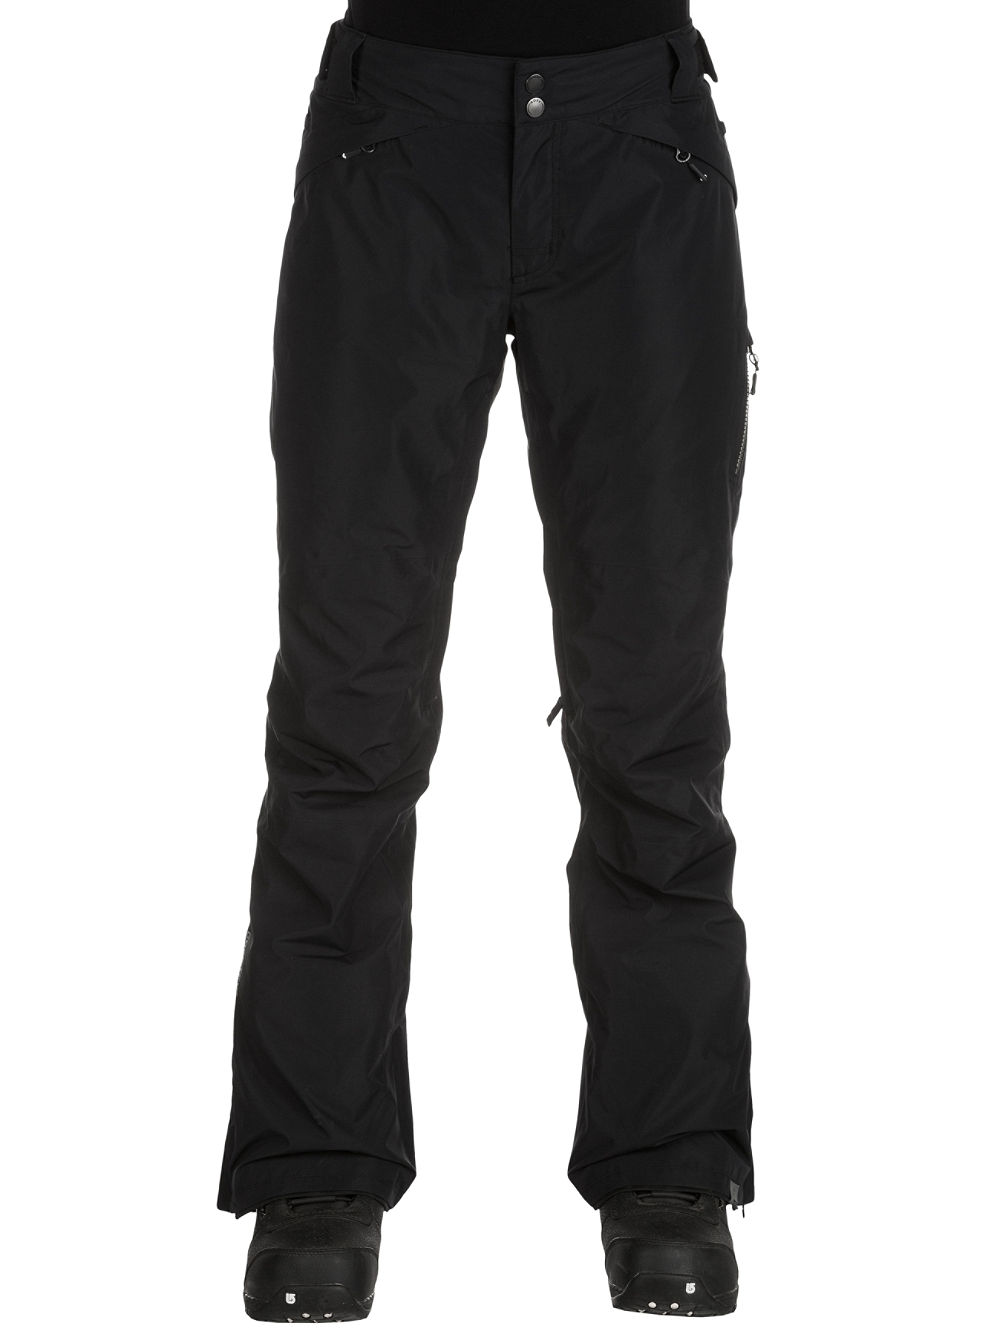 Rushmore 2L Gore-Tex Pants